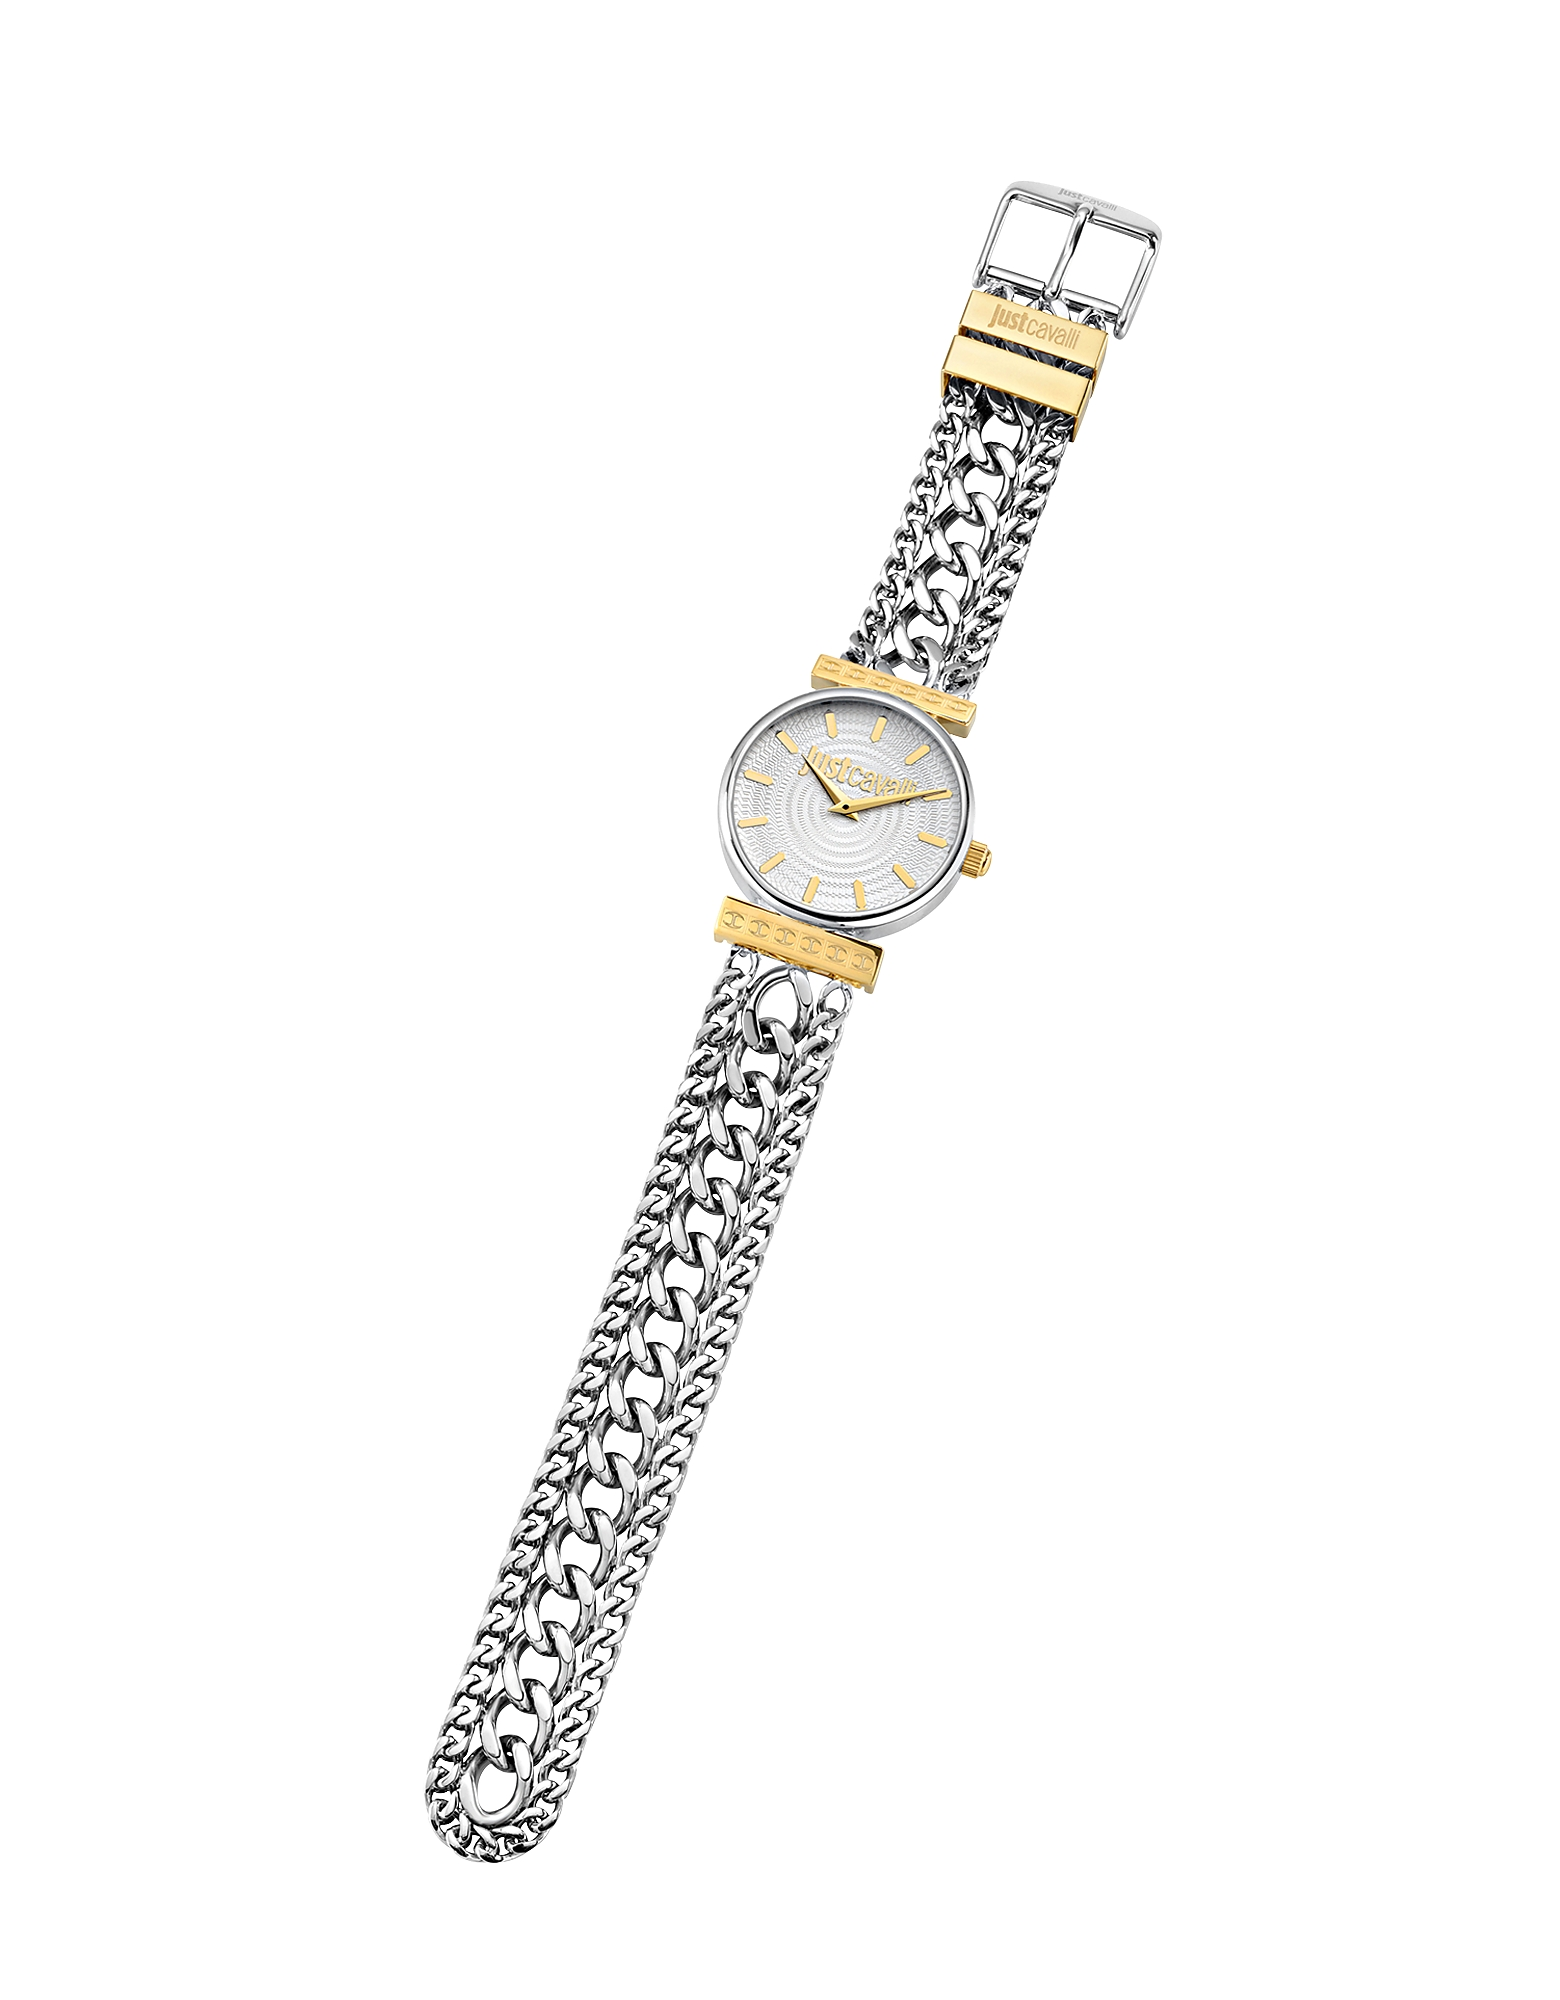 Just Cavalli Women's Watches, Just Couture Two Tone Stainless Steel Women's Watch